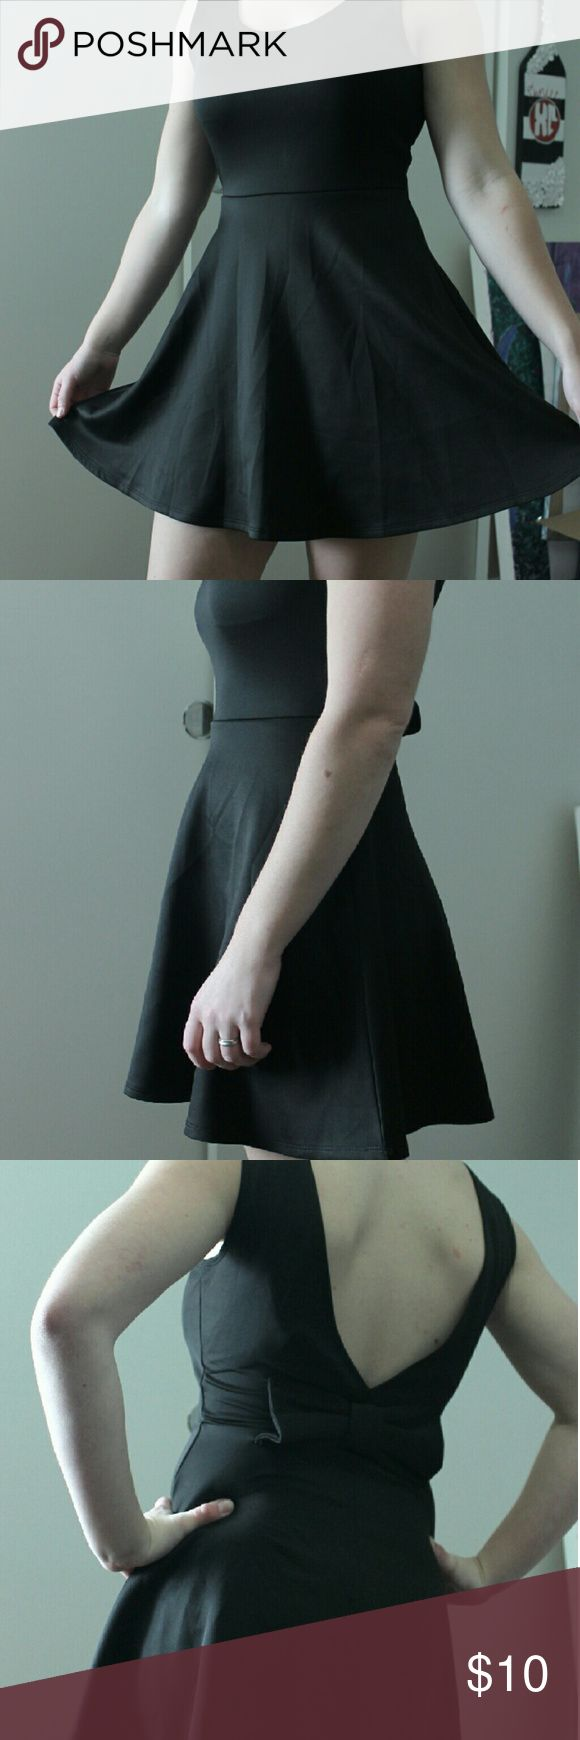 Black Skater Skirt Black Skater Skirt, low back, bow on the back. Like new, only worn once Wet Seal Dresses Midi